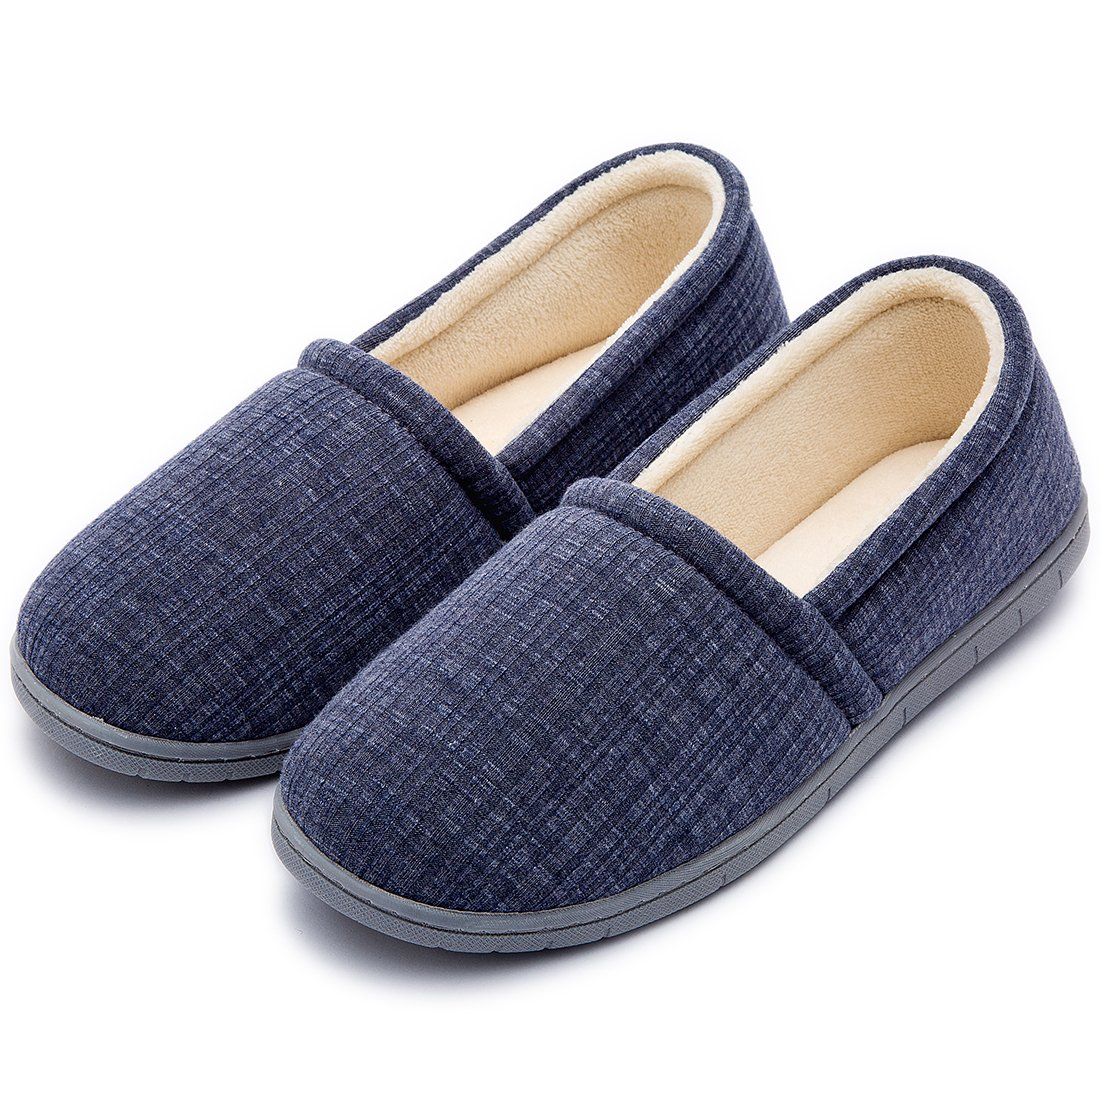 Cozy Niche Women's Knitted Vertical Stripe Shoes, Spring Summer Memory Foam House Slippers (9-10 B(M) US, Navy Blue)